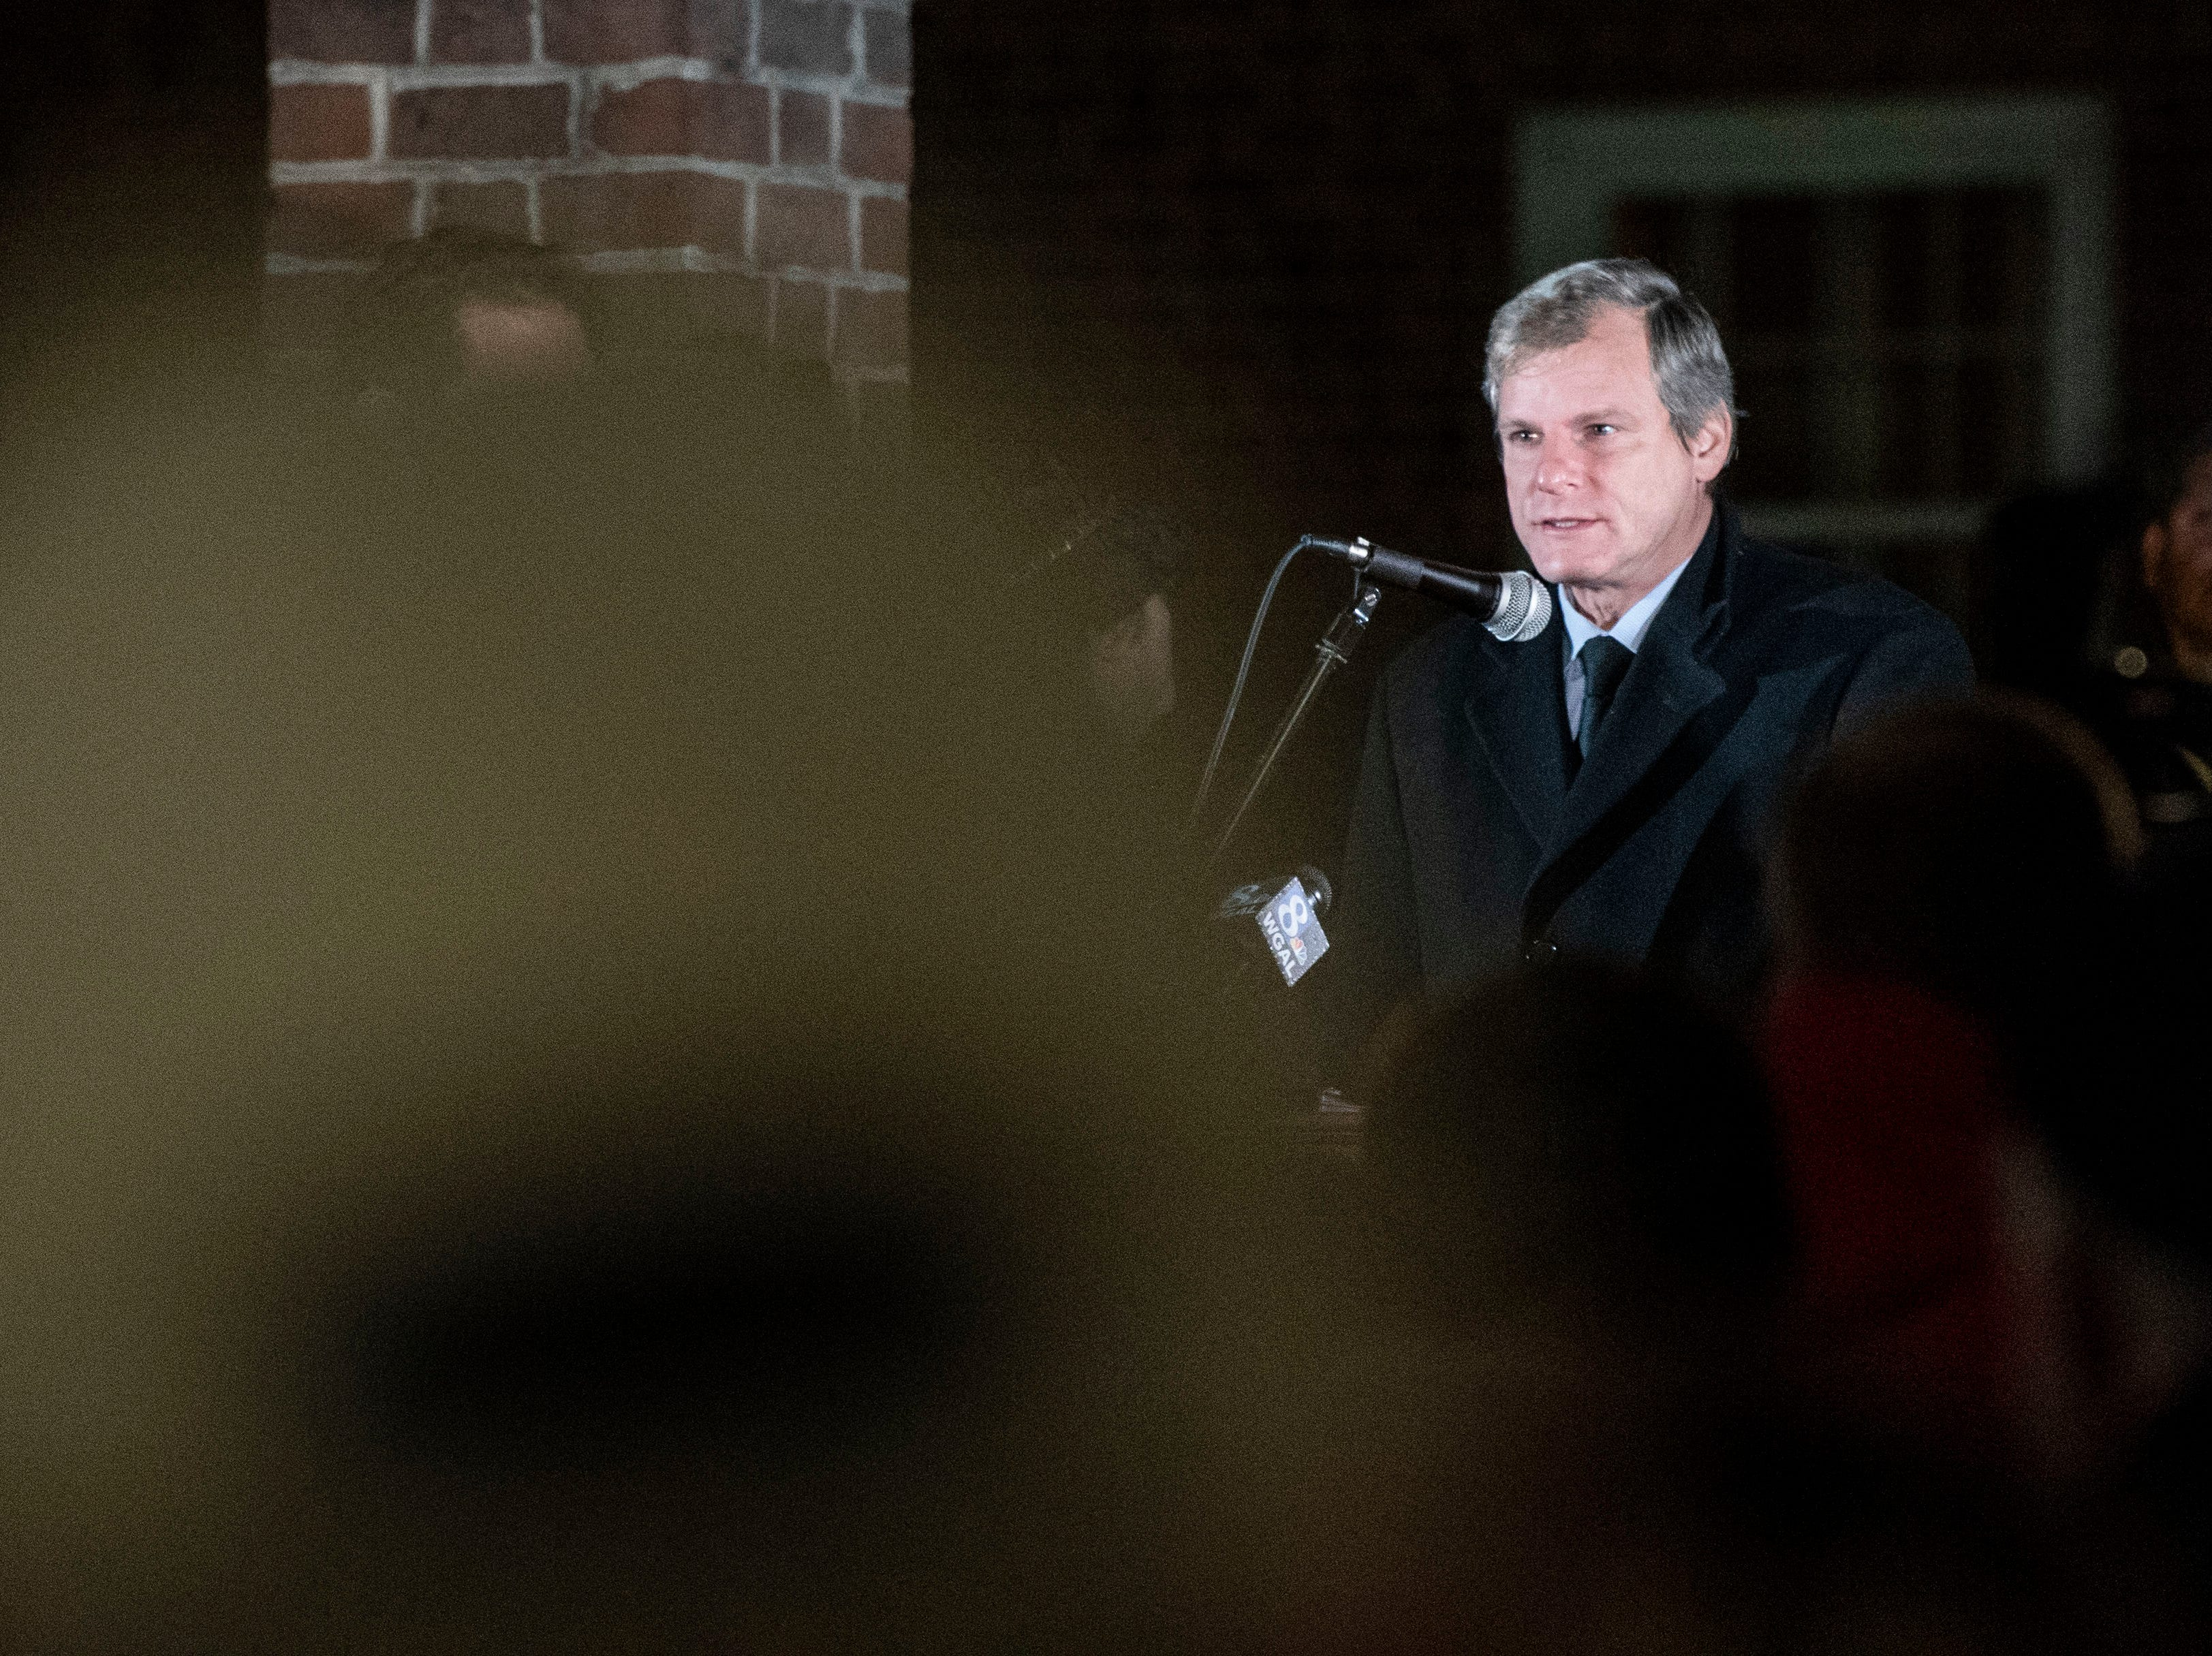 York mayor Michael Helfrich speaks during a candlelight vigil in front of city hall on Monday, Oct. 29, 2018. Hundreds of people gathered for the 'York Vigil against Hate,' mourning the 11 dead from the weekend shooting at Tree of Life synagogue in Pittsburgh.